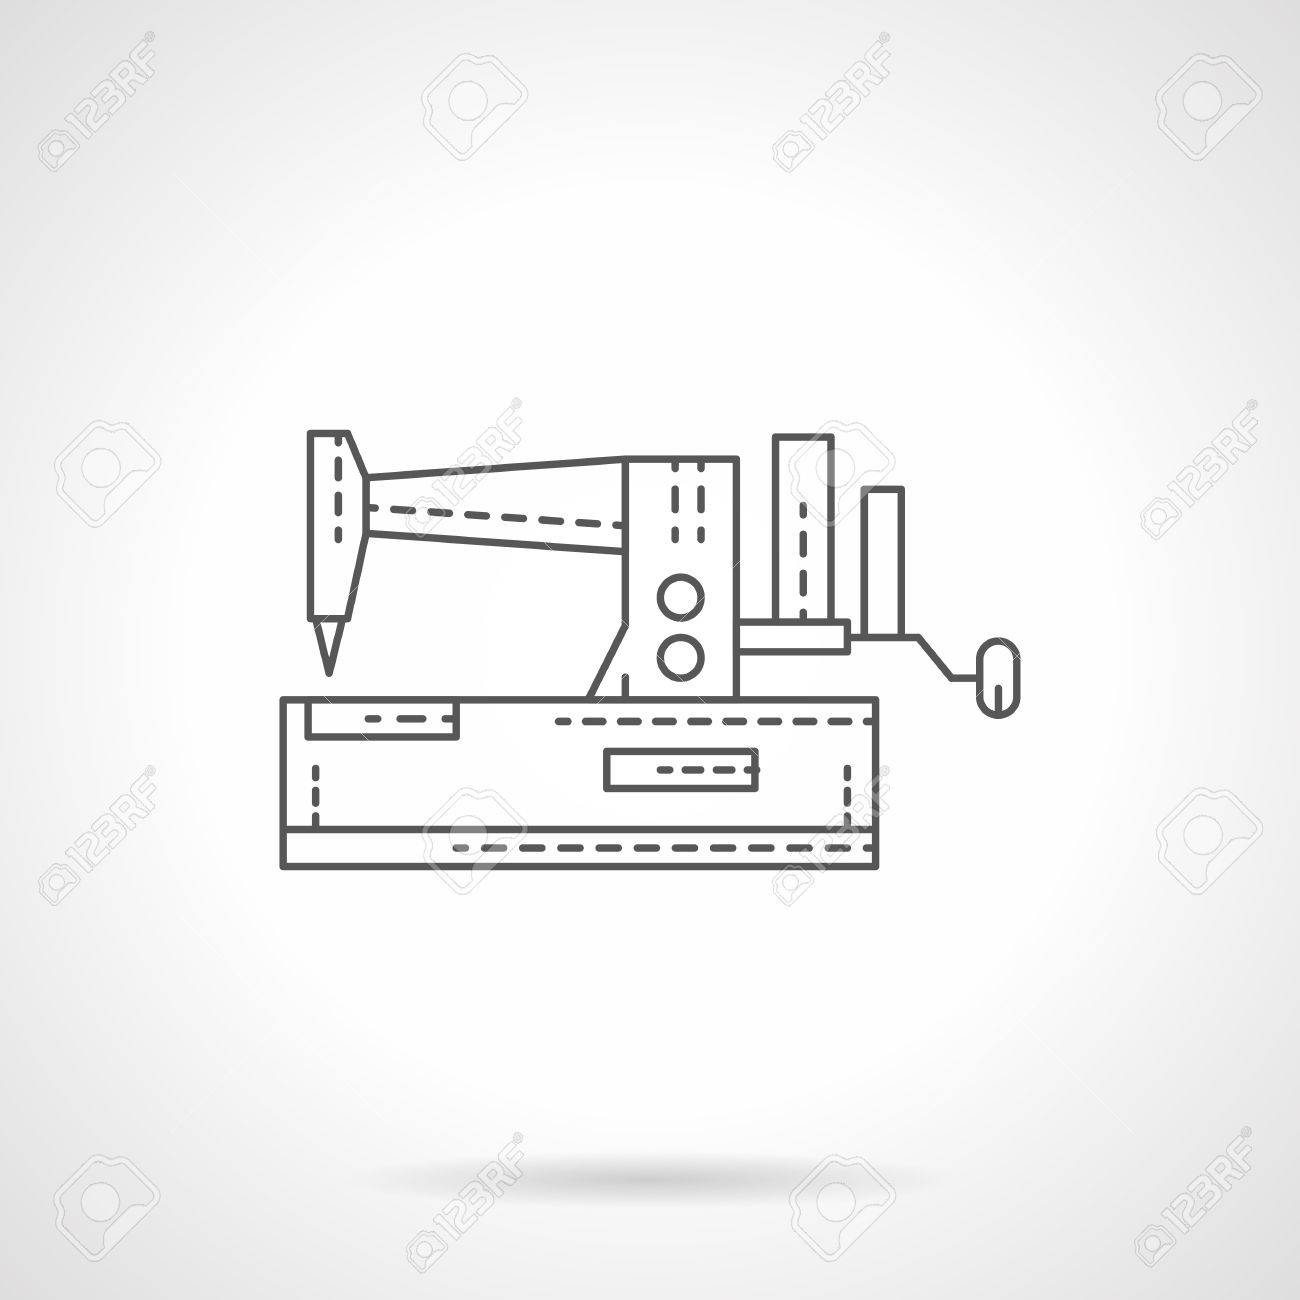 Manual sewing machine. Single flat thin line style vector icon. Element